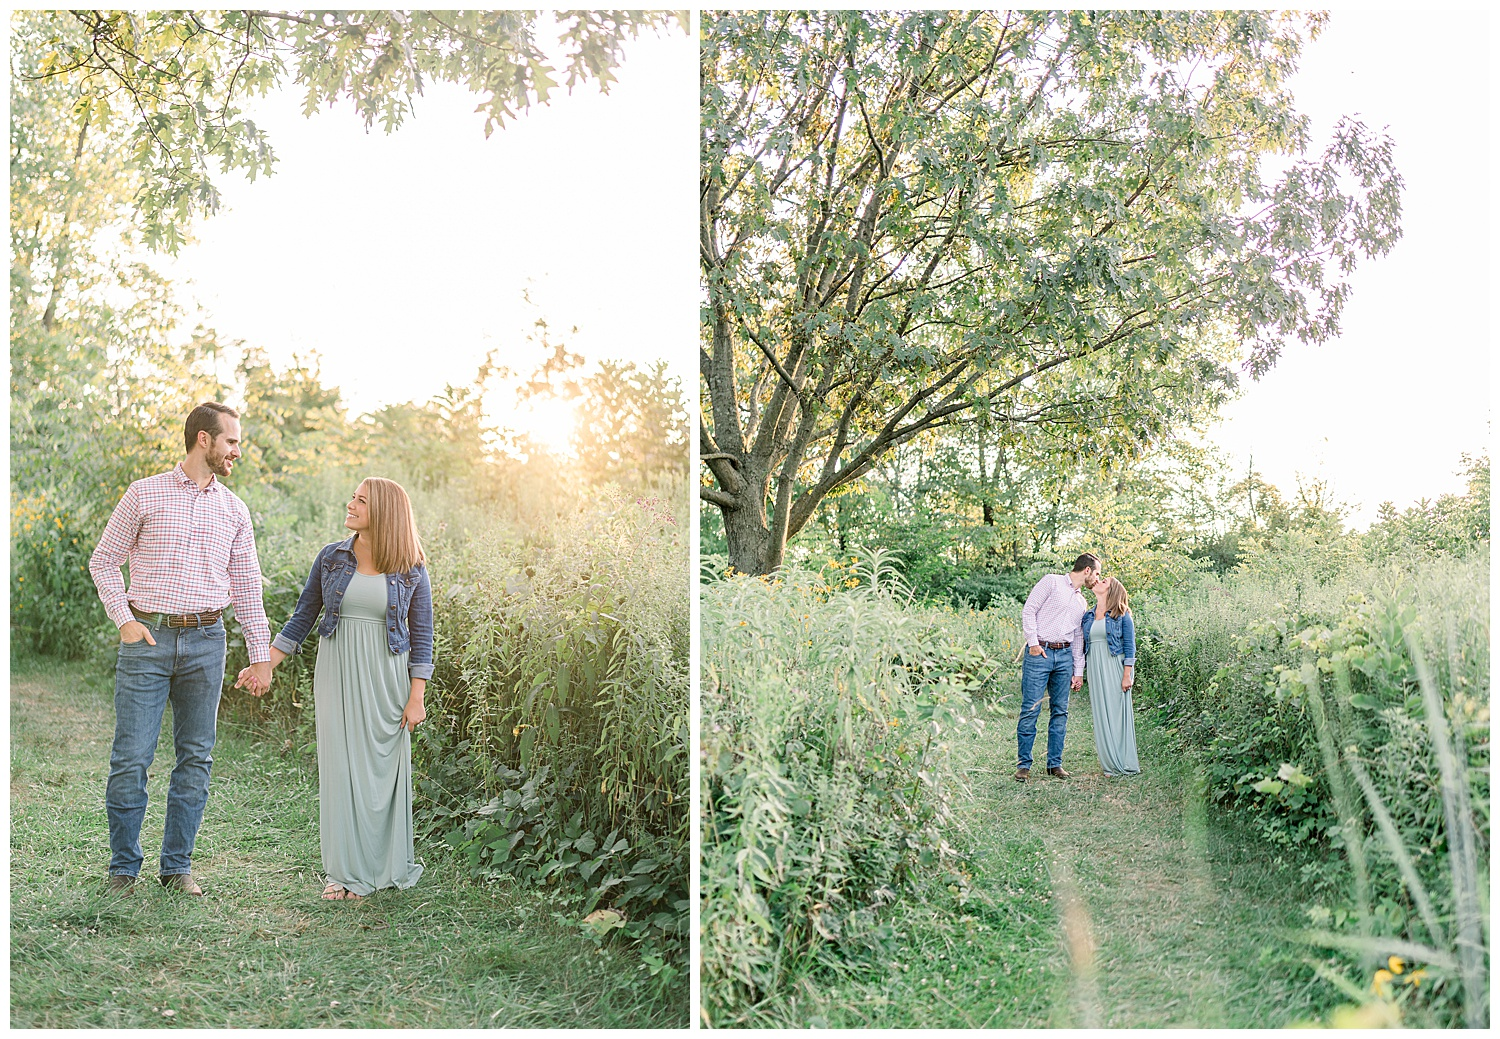 Cox_Arboretum_Anniversary_Session_Miamisburg_Ohio_Cassandra_Janina_Photography_Ohio_Wedding_Photographer_0273.jpg